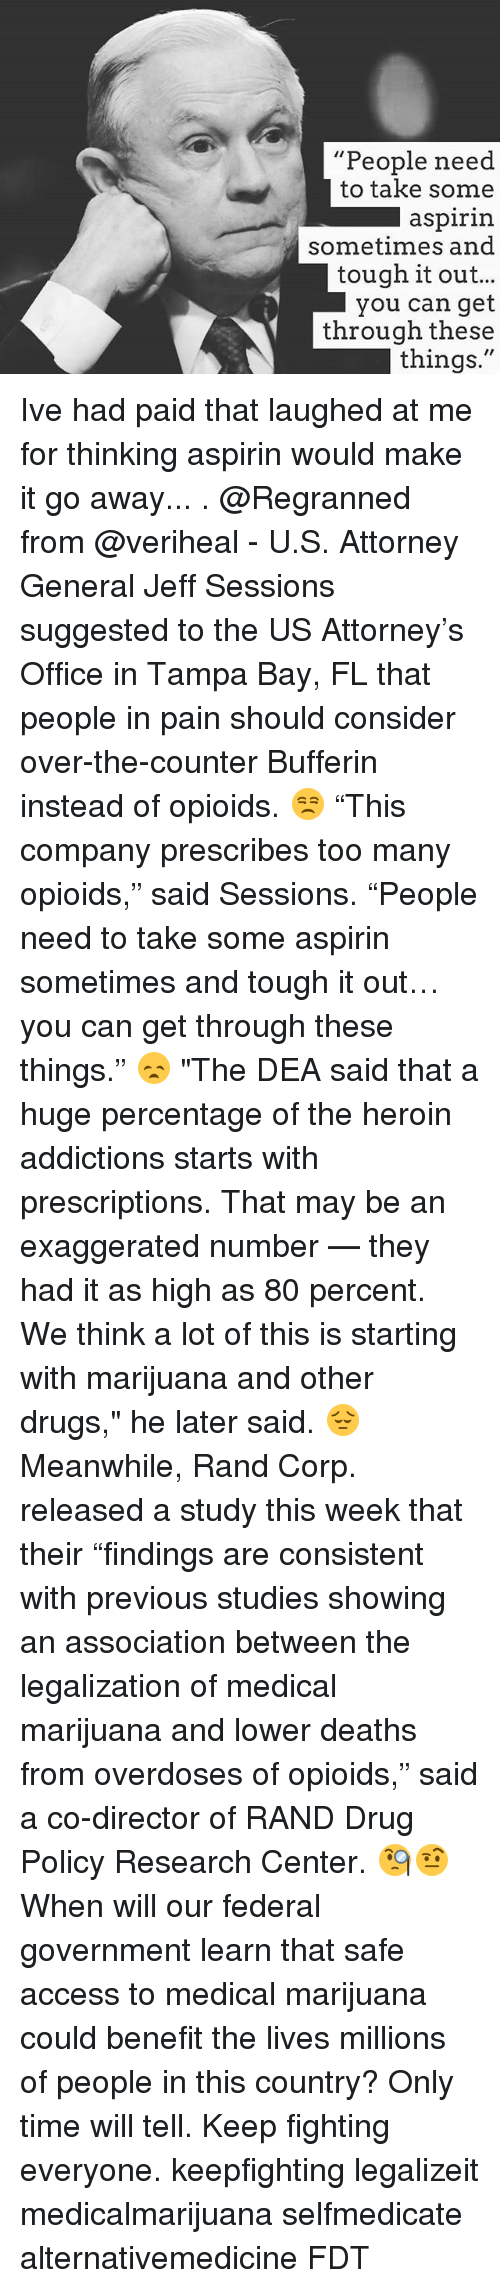 """Drugs, Heroin, and Memes: """"People need  to take some  l aspirin  sometimes and  tough it out...  you can get  through these  things. Ive had paid that laughed at me for thinking aspirin would make it go away... . @Regranned from @veriheal - U.S. Attorney General Jeff Sessions suggested to the US Attorney's Office in Tampa Bay, FL that people in pain should consider over-the-counter Bufferin instead of opioids. 😒 """"This company prescribes too many opioids,"""" said Sessions. """"People need to take some aspirin sometimes and tough it out… you can get through these things."""" 😞 """"The DEA said that a huge percentage of the heroin addictions starts with prescriptions. That may be an exaggerated number — they had it as high as 80 percent. We think a lot of this is starting with marijuana and other drugs,"""" he later said. 😔 Meanwhile, Rand Corp. released a study this week that their """"findings are consistent with previous studies showing an association between the legalization of medical marijuana and lower deaths from overdoses of opioids,"""" said a co-director of RAND Drug Policy Research Center. 🧐🤨 When will our federal government learn that safe access to medical marijuana could benefit the lives millions of people in this country? Only time will tell. Keep fighting everyone. keepfighting legalizeit medicalmarijuana selfmedicate alternativemedicine FDT"""